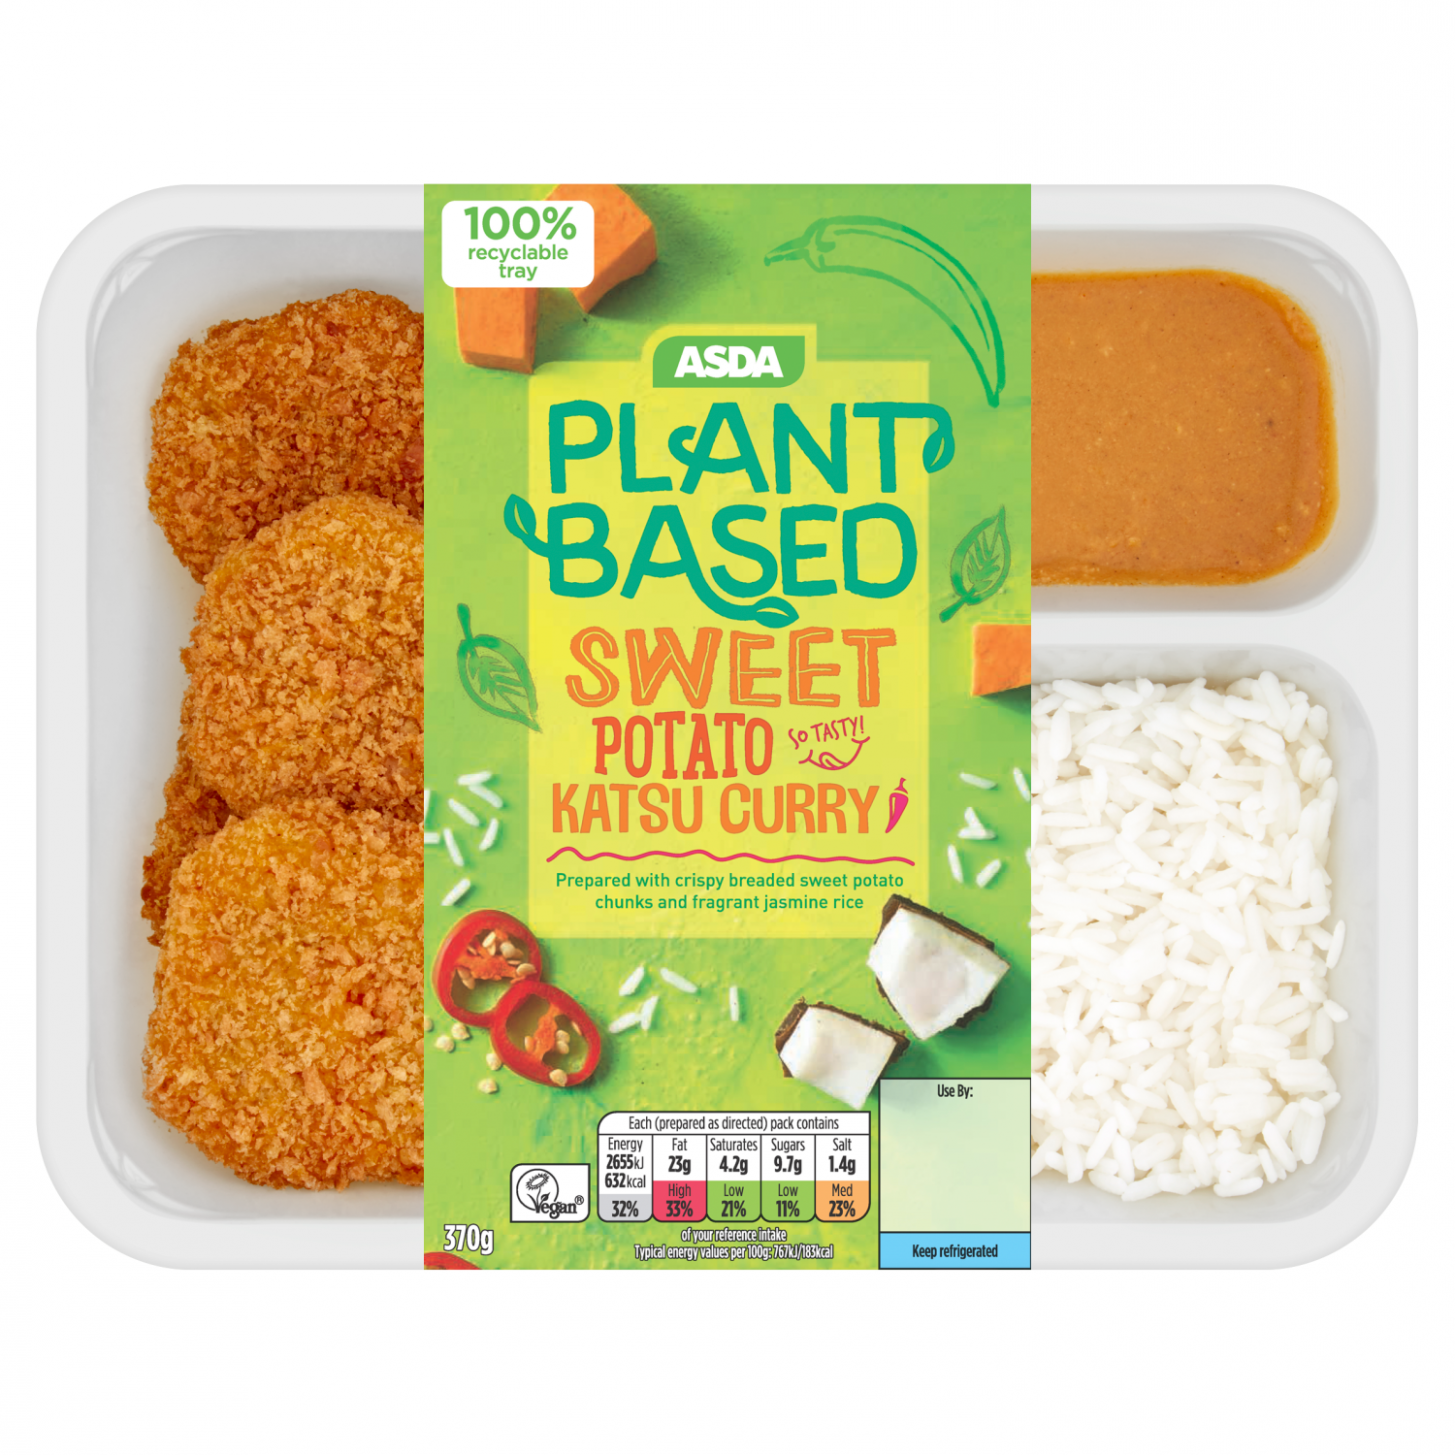 Asda launches first vegan plant-based range with 11 new products - Healthy Recipes Asda